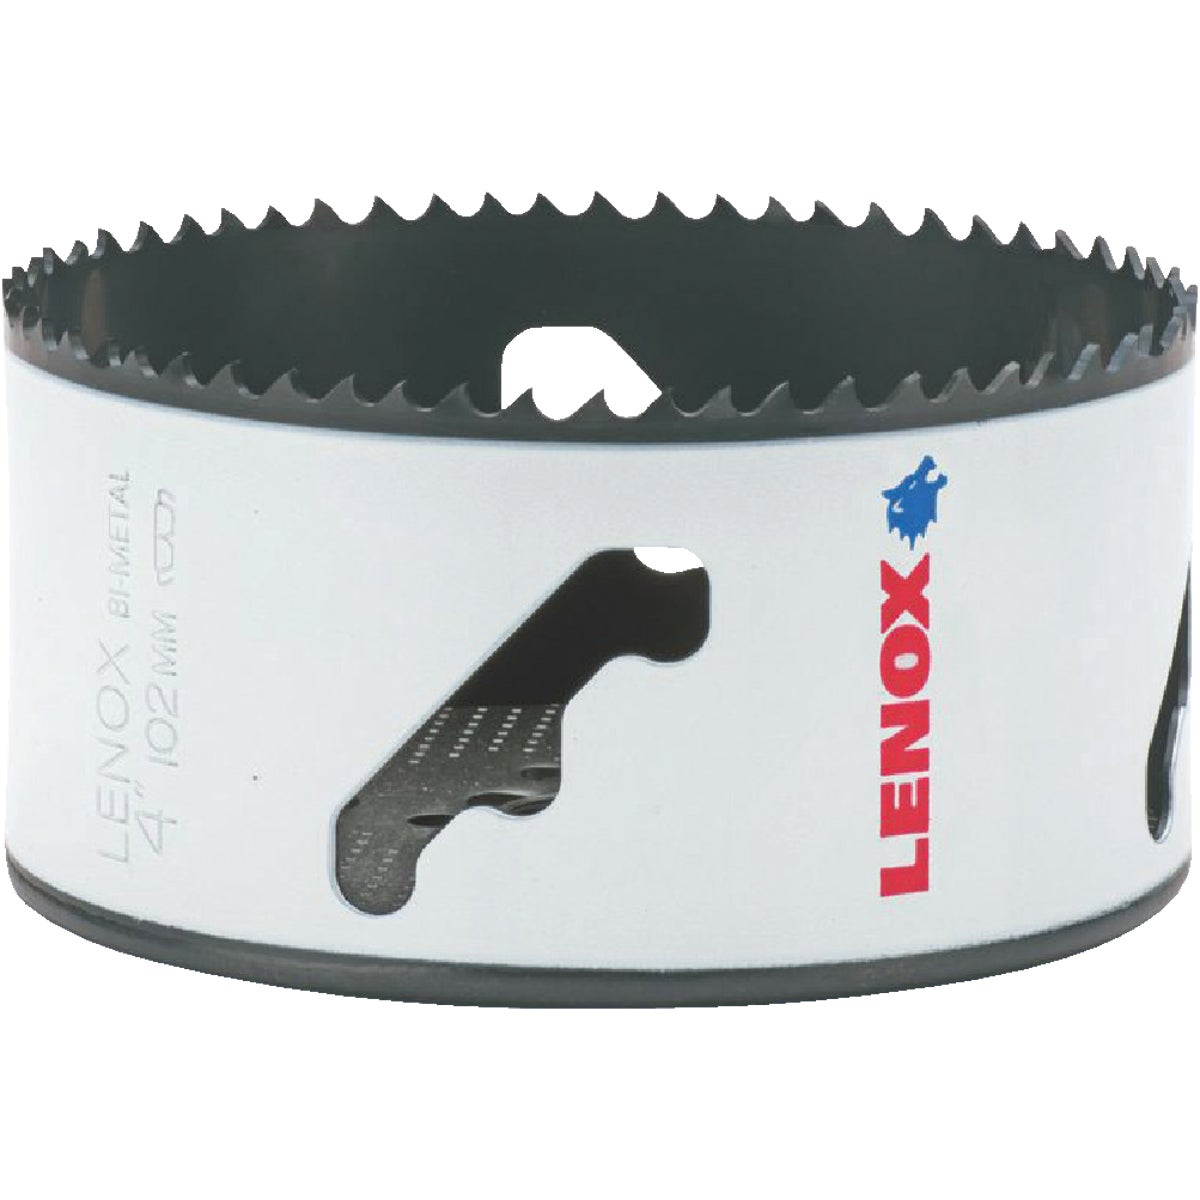 "4"" HOLE SAW - 1772014 by Lenox"